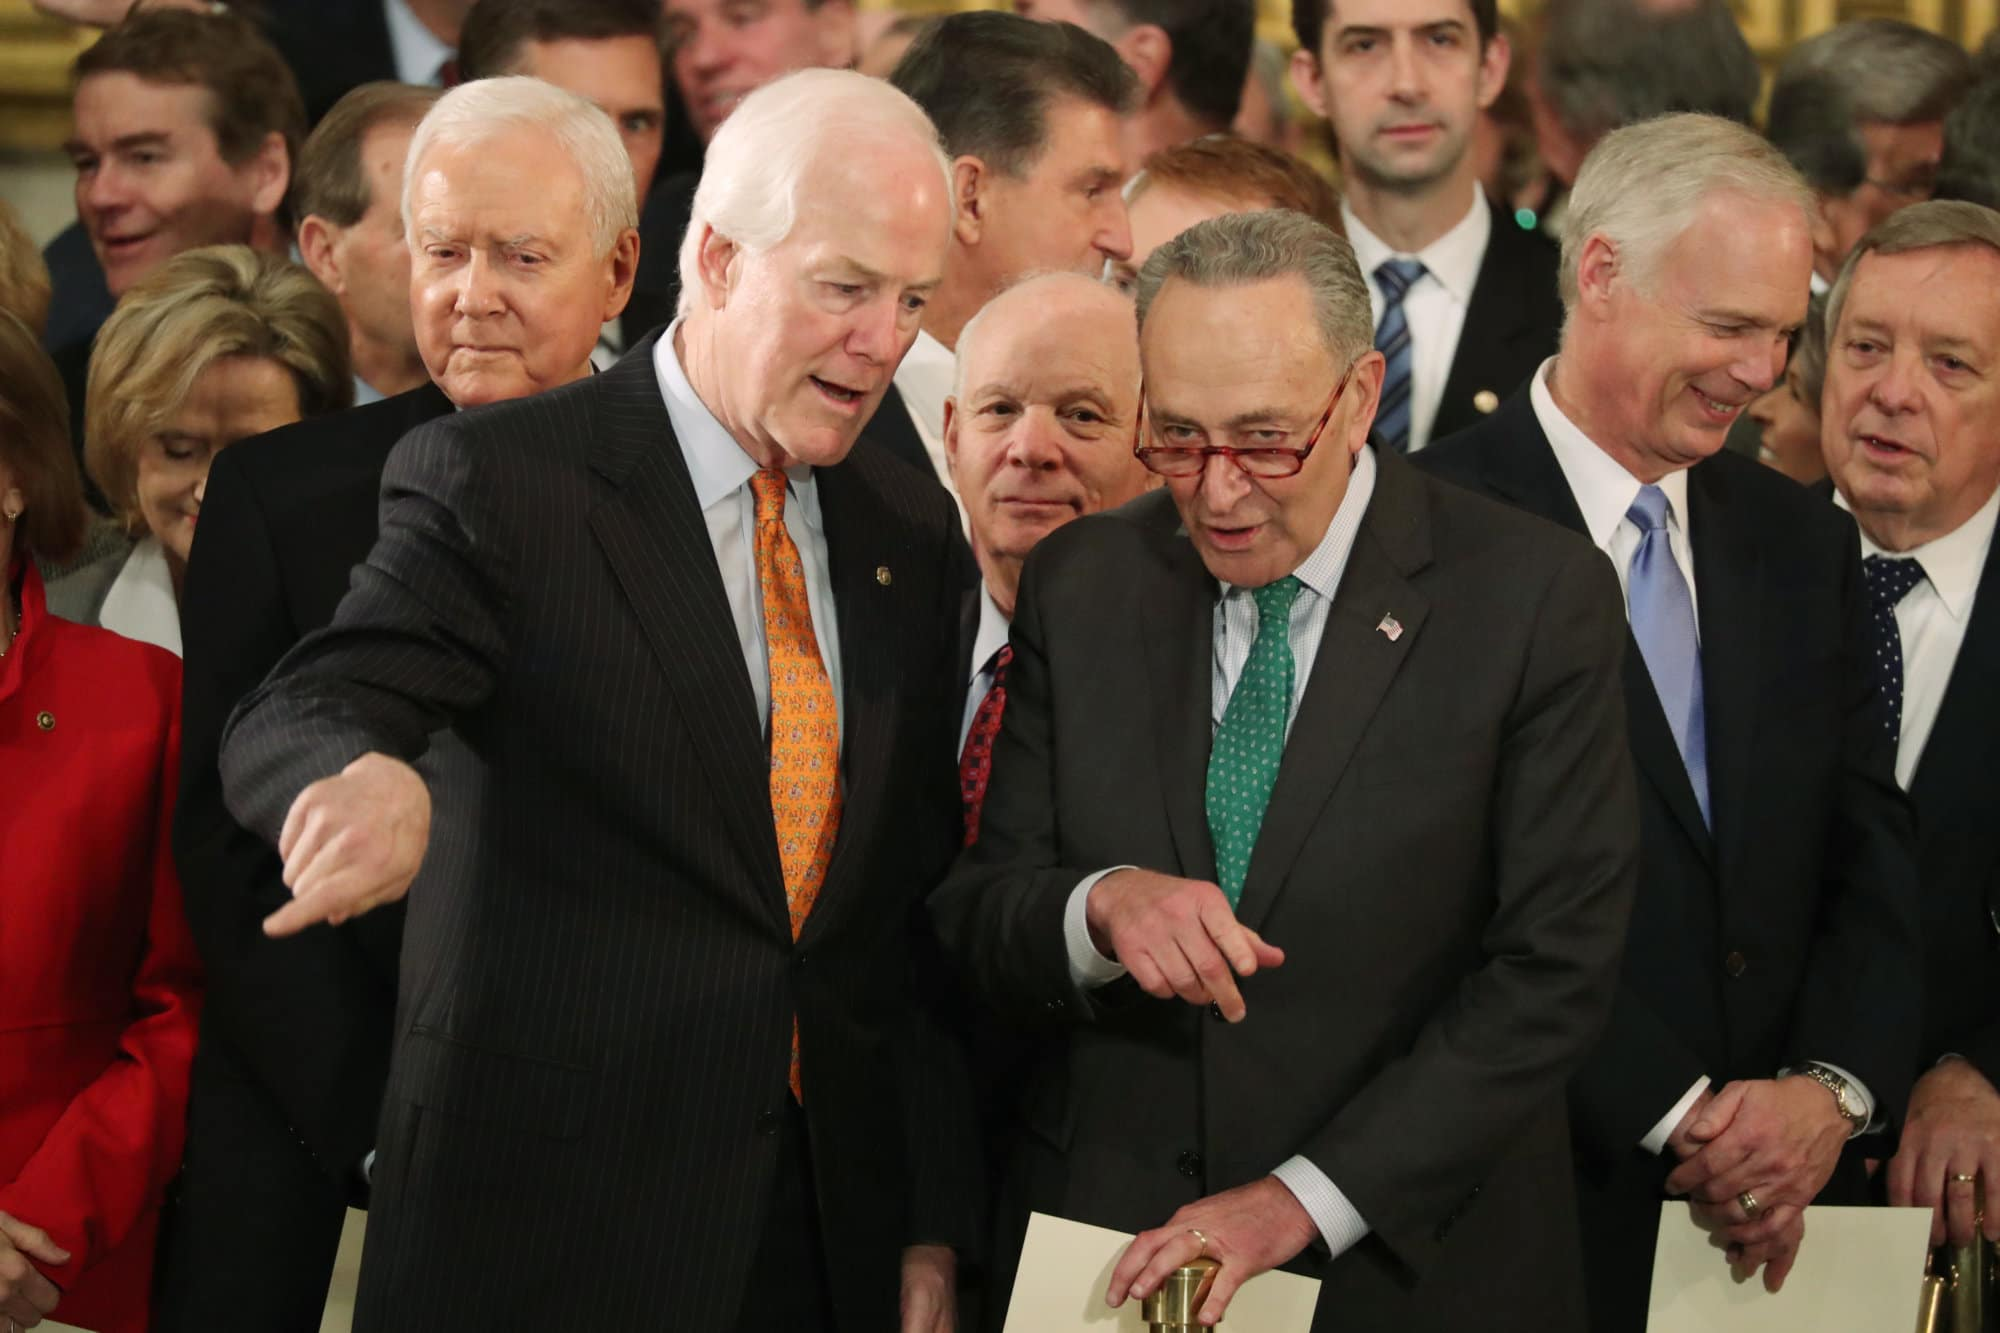 U.S. Senate Majority Whip John Cornyn and Senate Minority Leader Chuck Schumer talk while Sen. Orrin Hatch, back left, looks on as they attend ceremonies for former President George H.W. Bush at the Capitol in Washington, Monday, Dec. 3, 2018. (Jonathan Ernst/Pool Photo via AP)